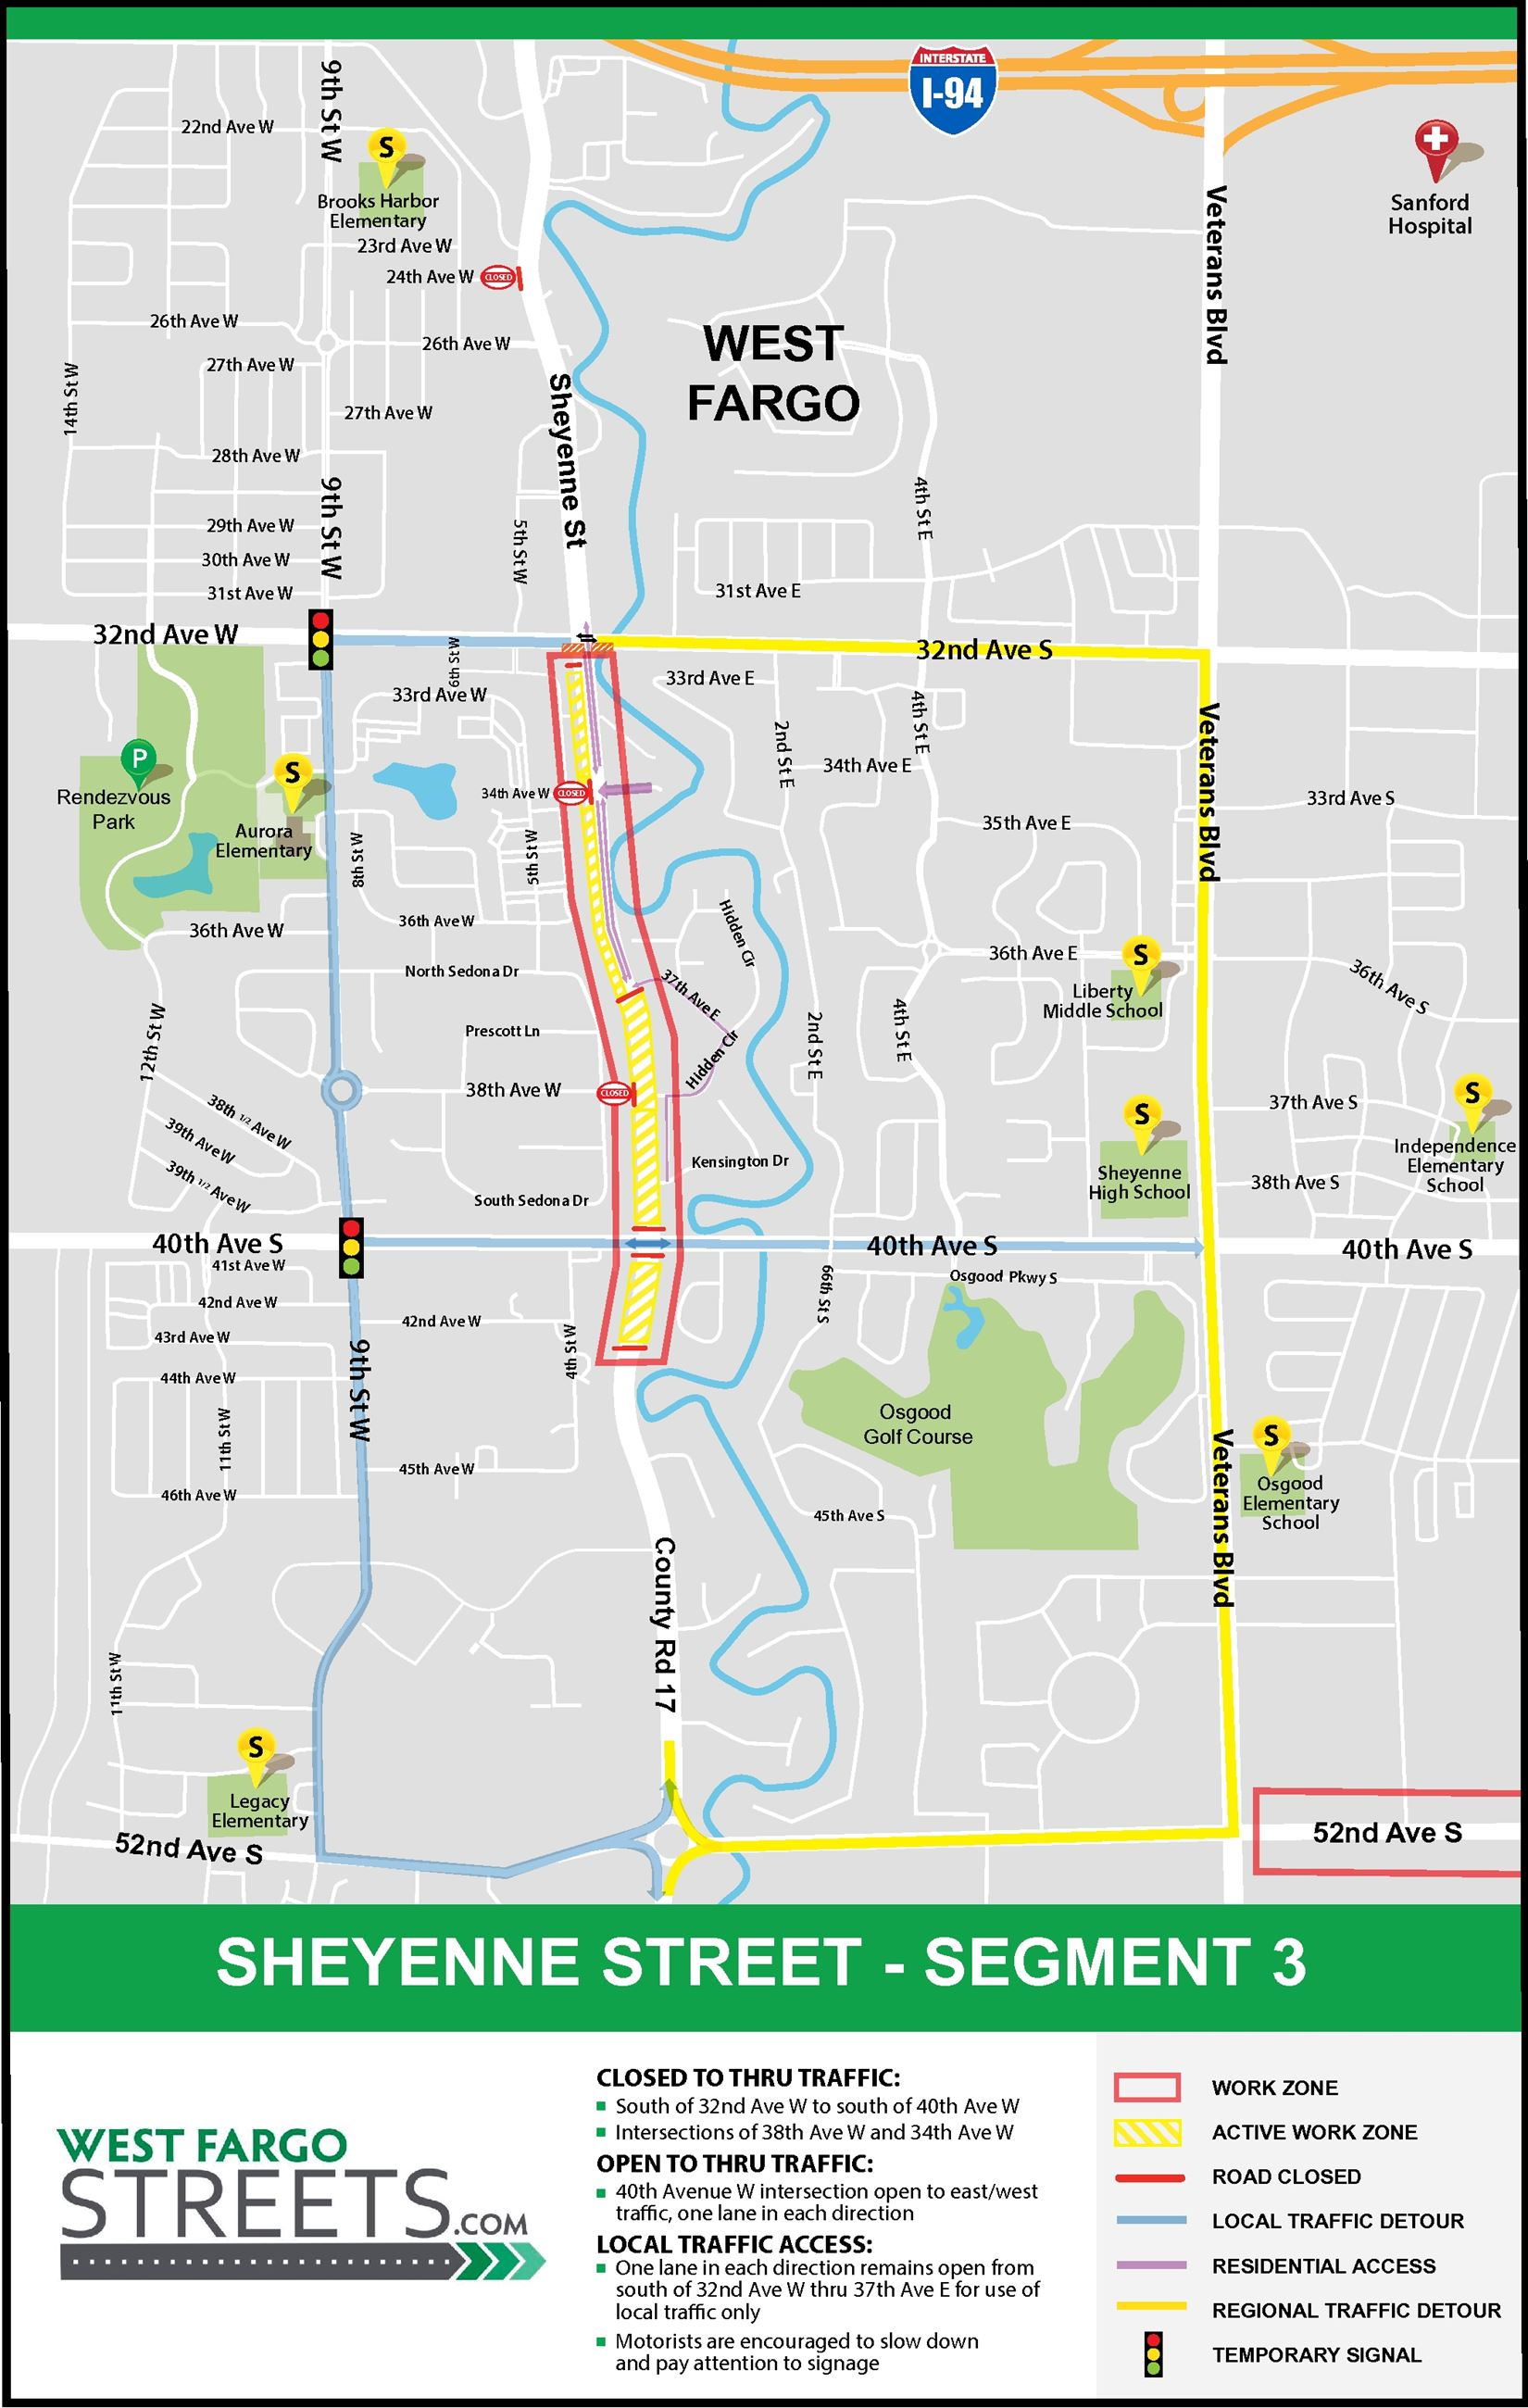 Overview map of Sheyenne Street segment 3 reconstruction as of April 22